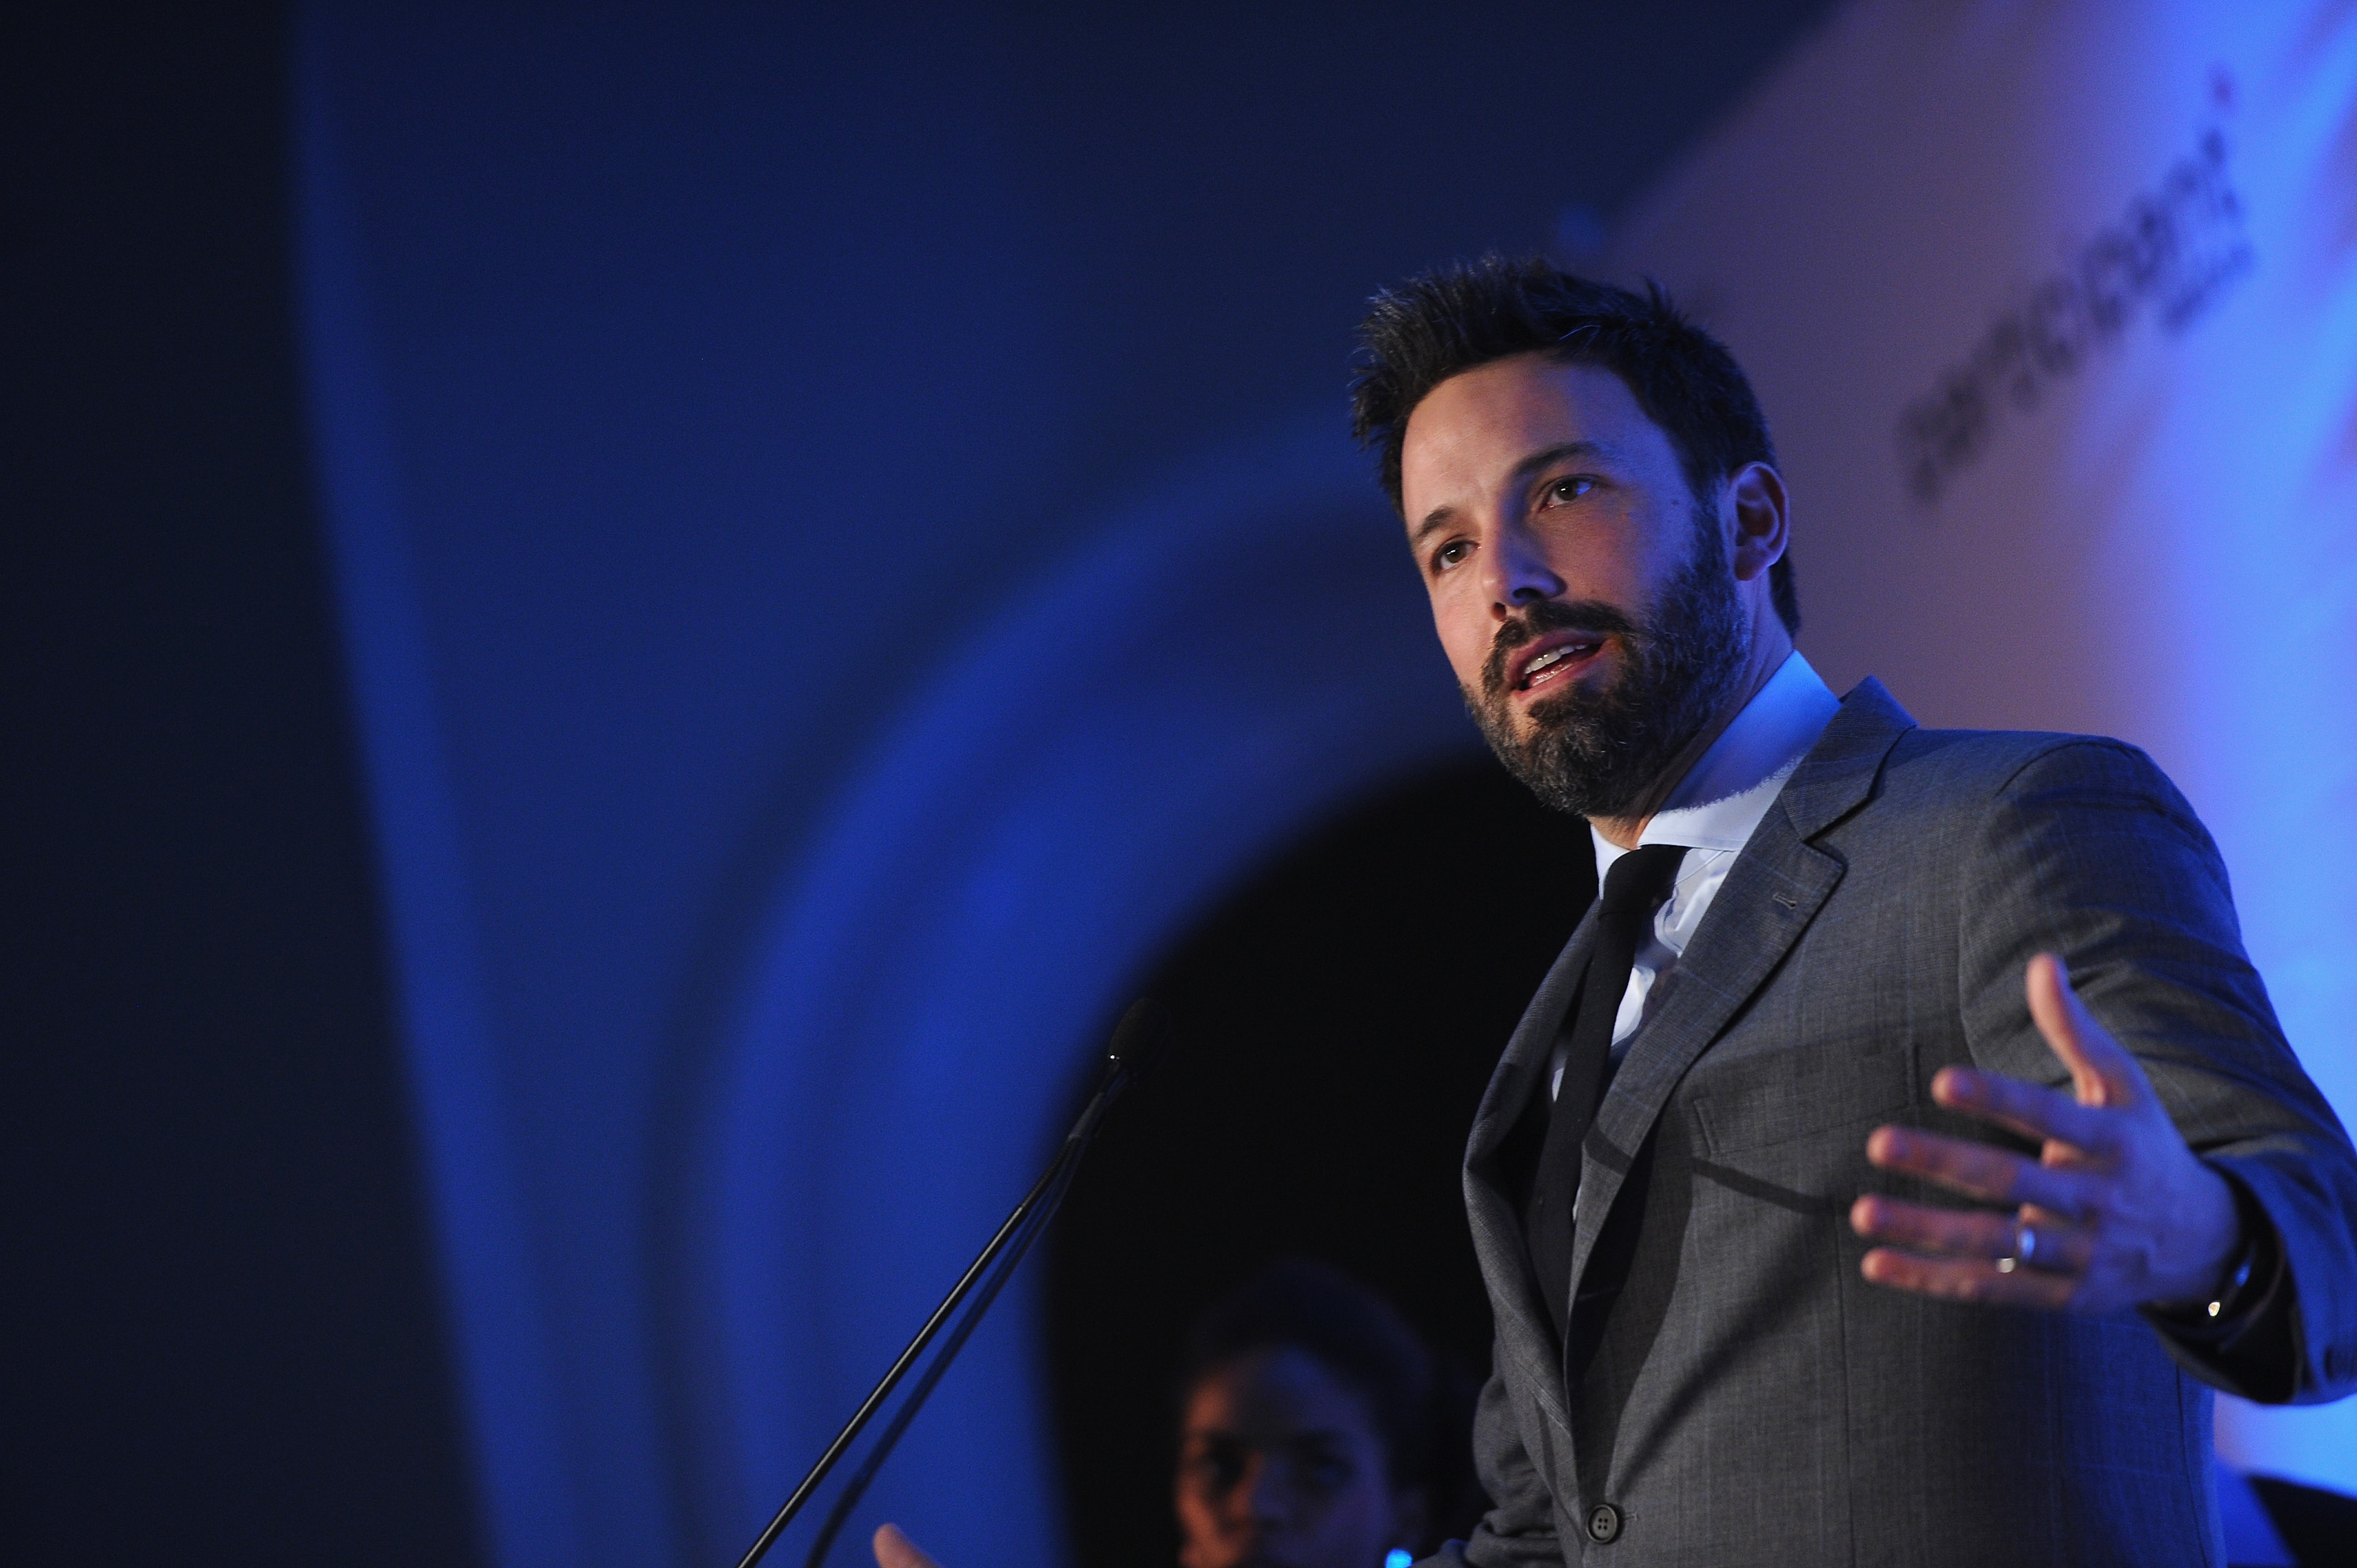 Ben Affleck Gets Honored With Support From Pregnant Kristen Bell